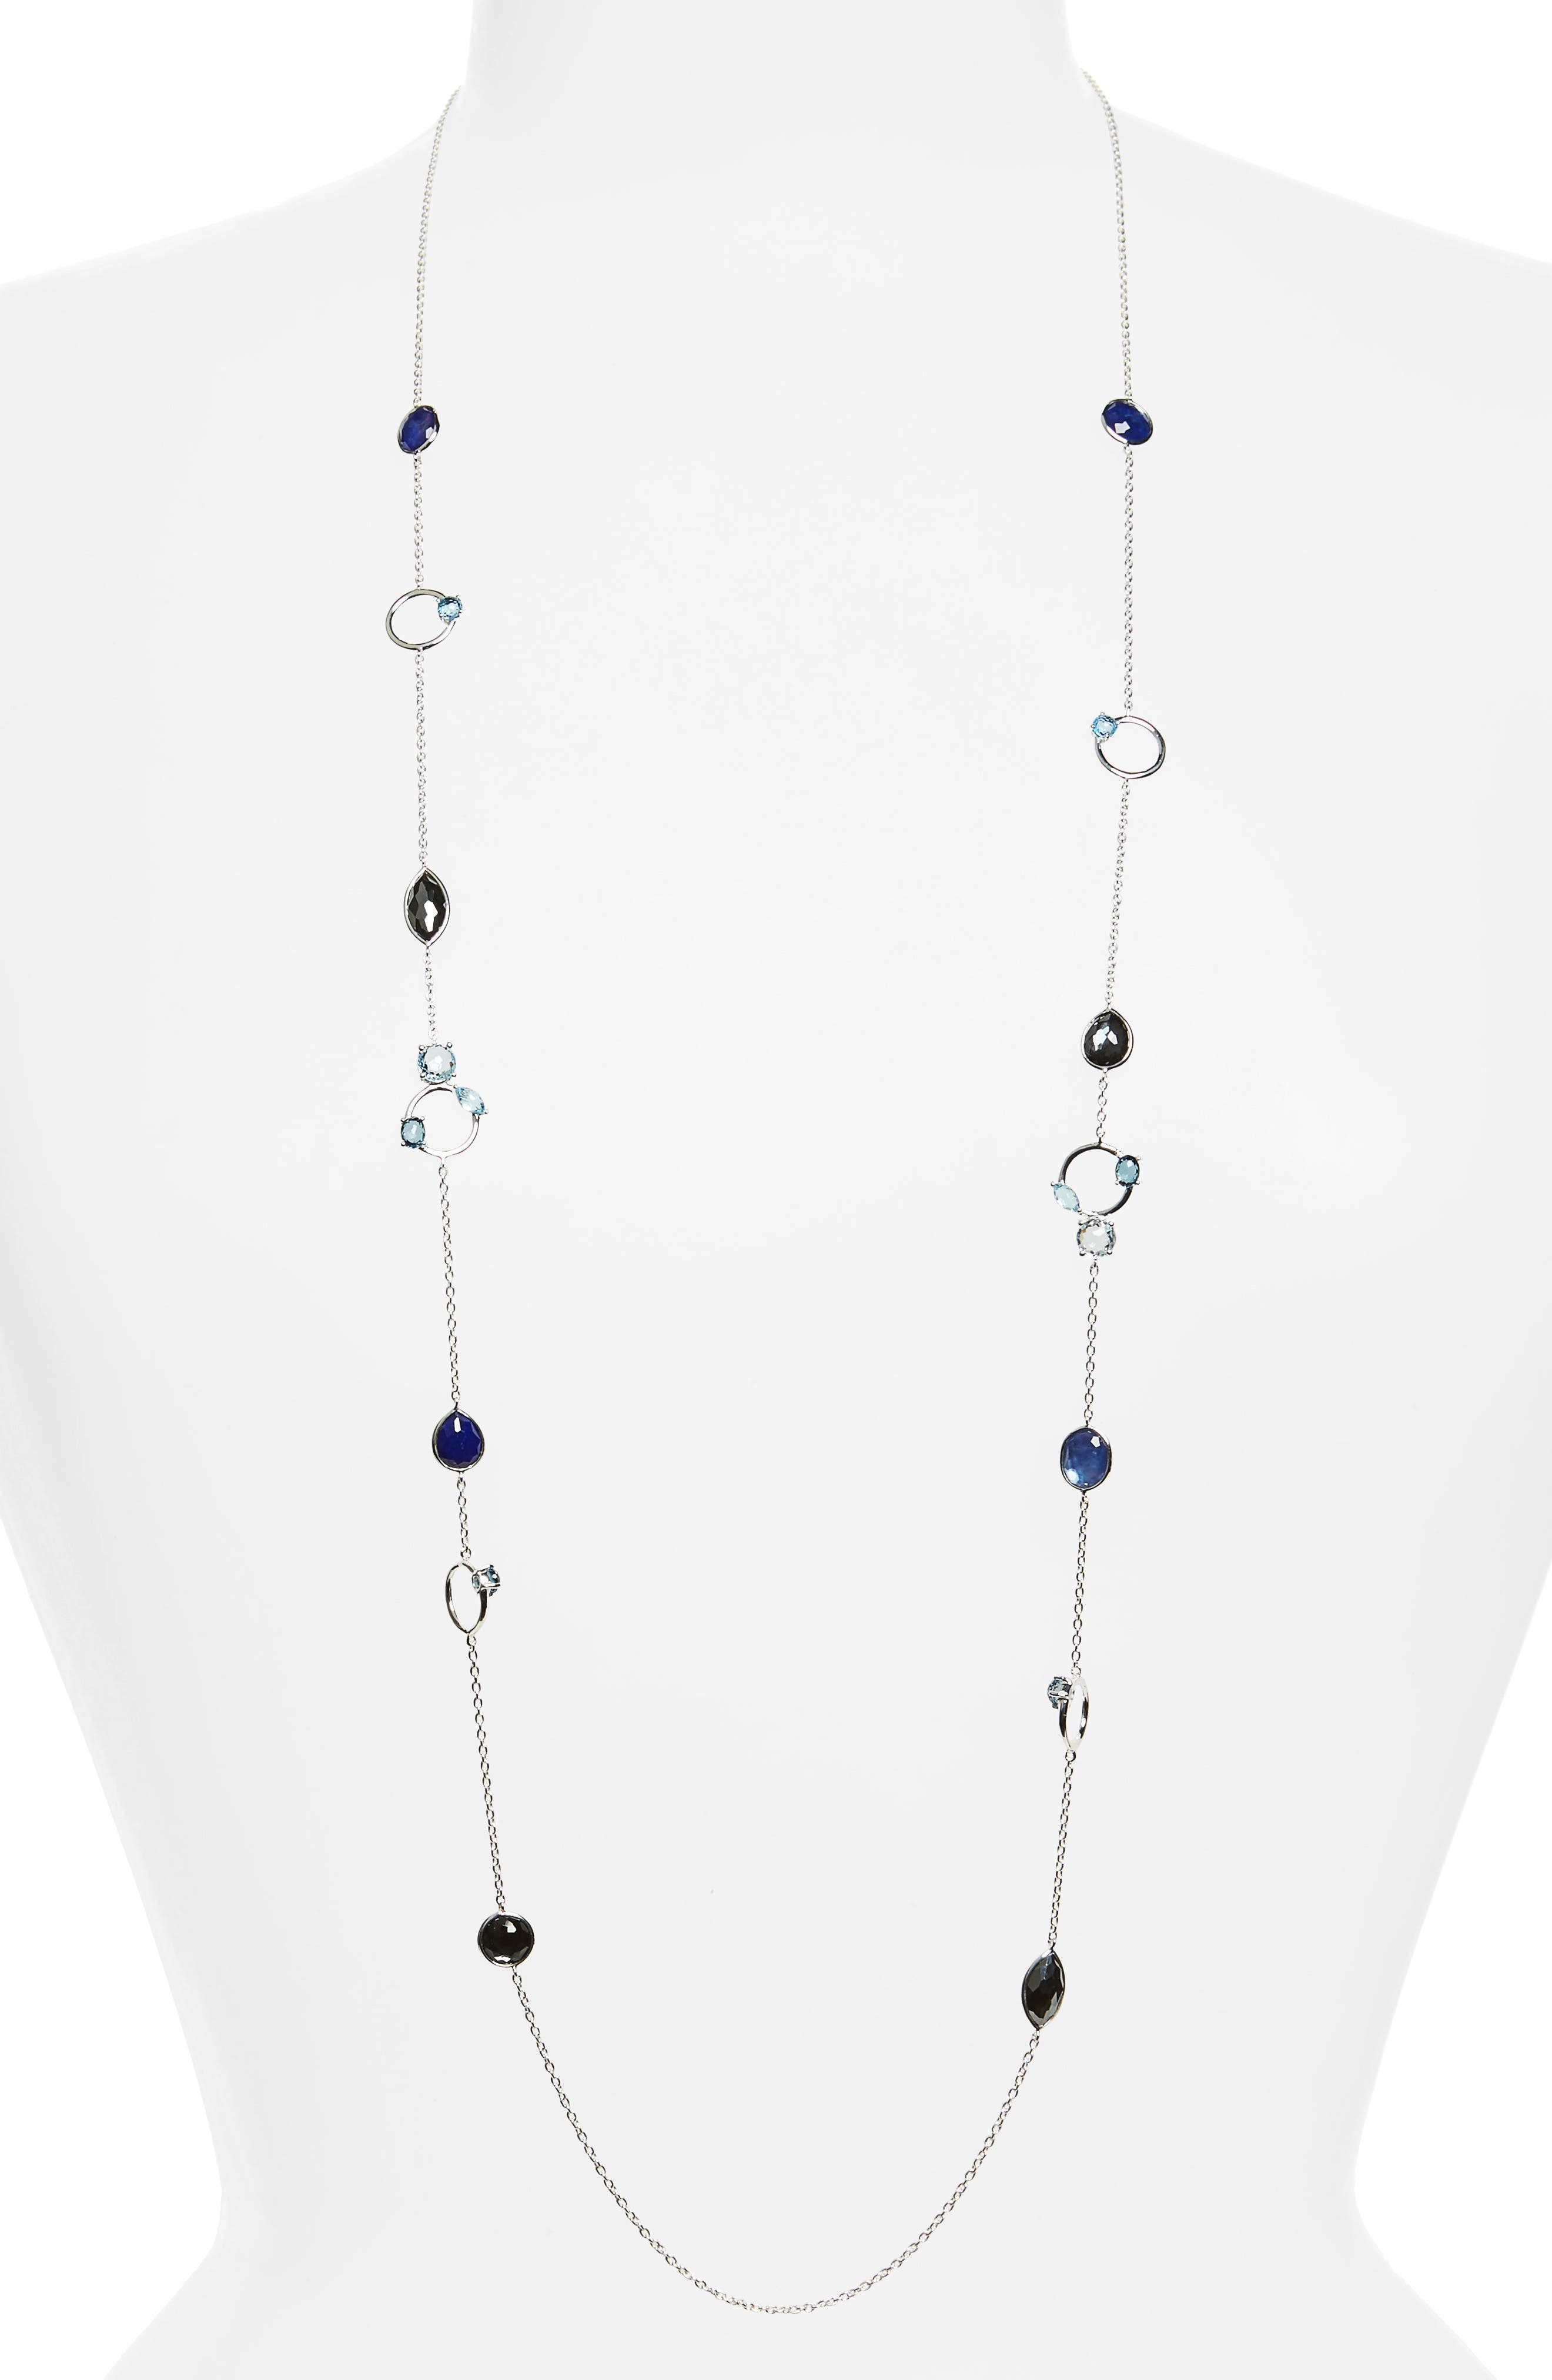 Rock Candy Strand Necklace,                             Main thumbnail 1, color,                             Eclipse